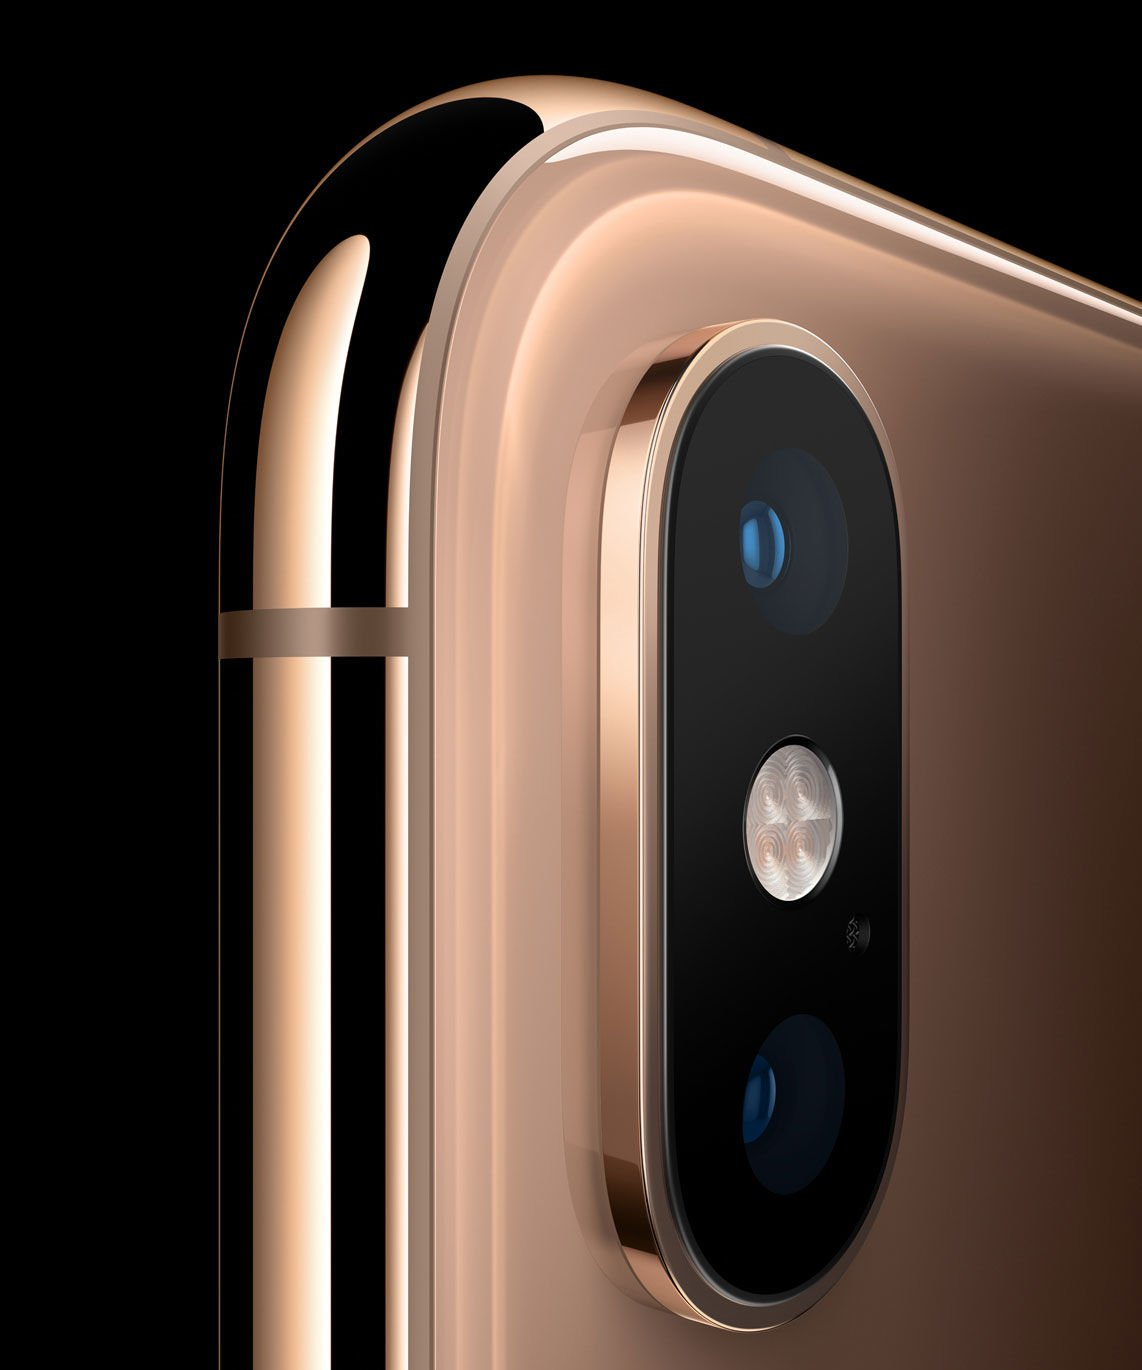 iPhone XS & XS Max specs, features, cameras